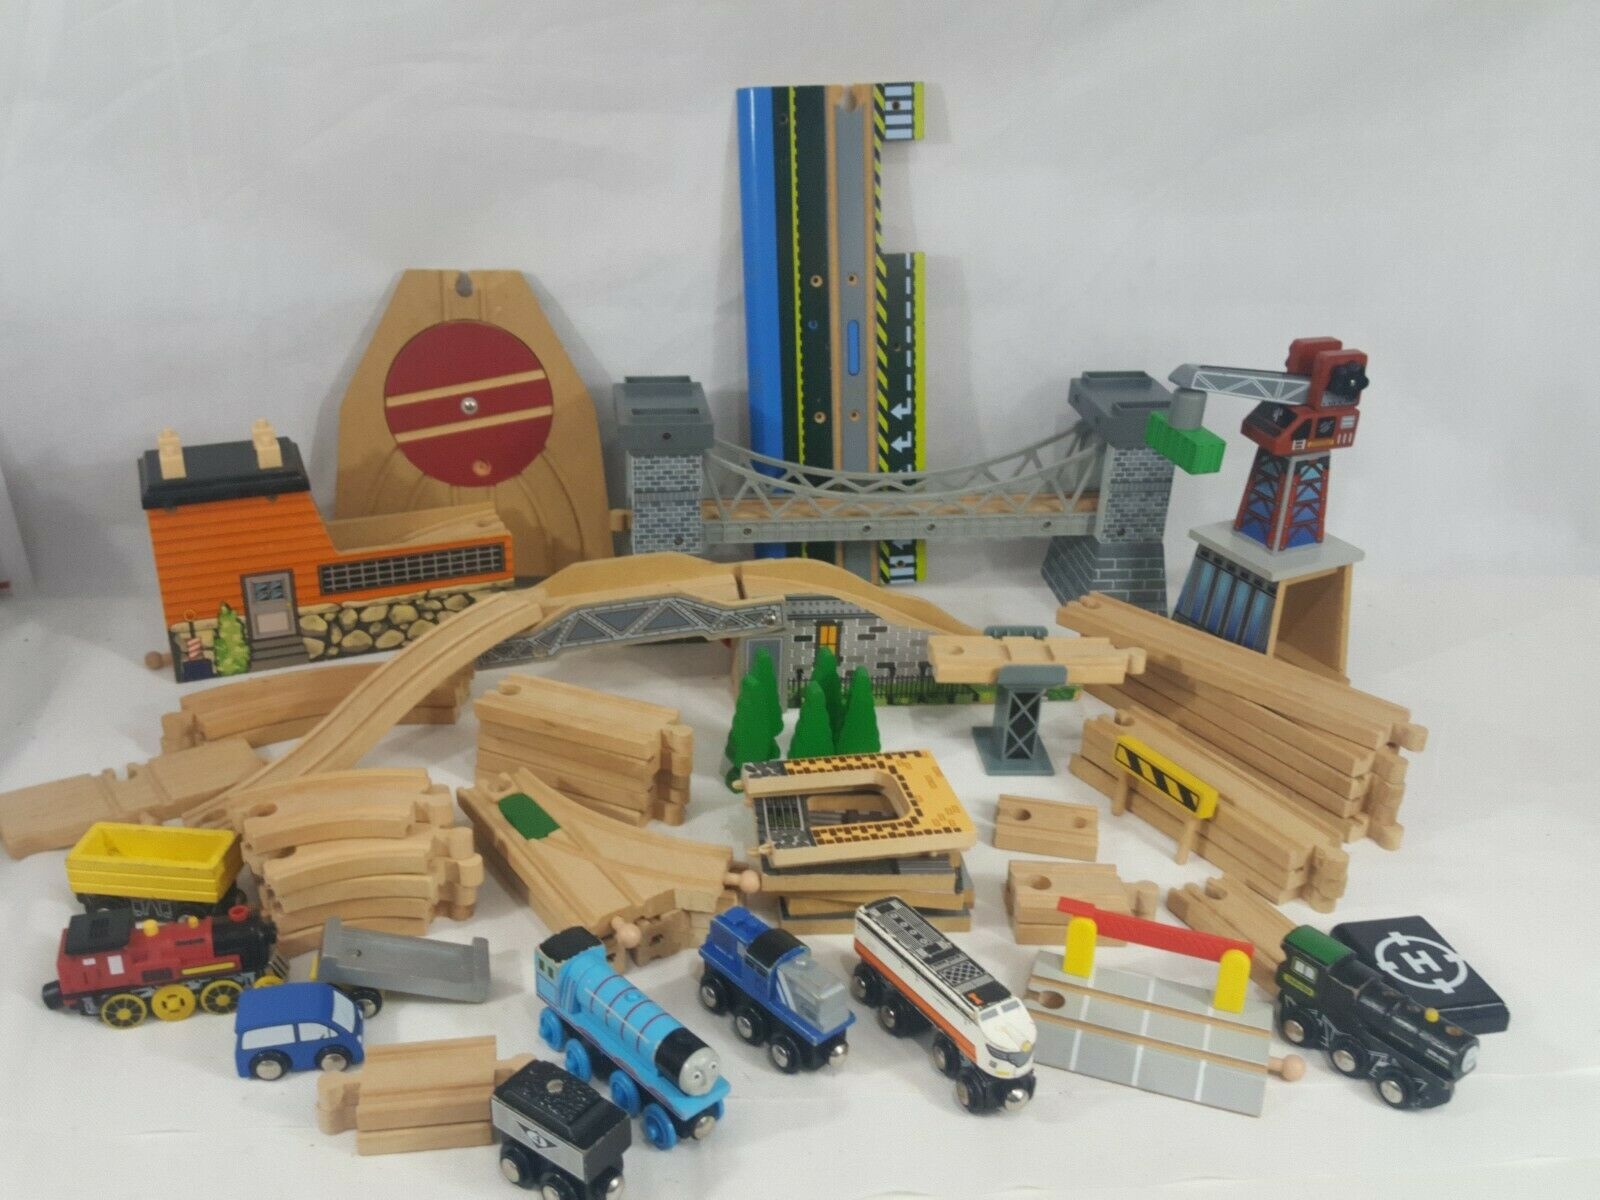 Thomas Lot of Wood i treni Tracks gree cifras costruziones Turn Table Crane Huge